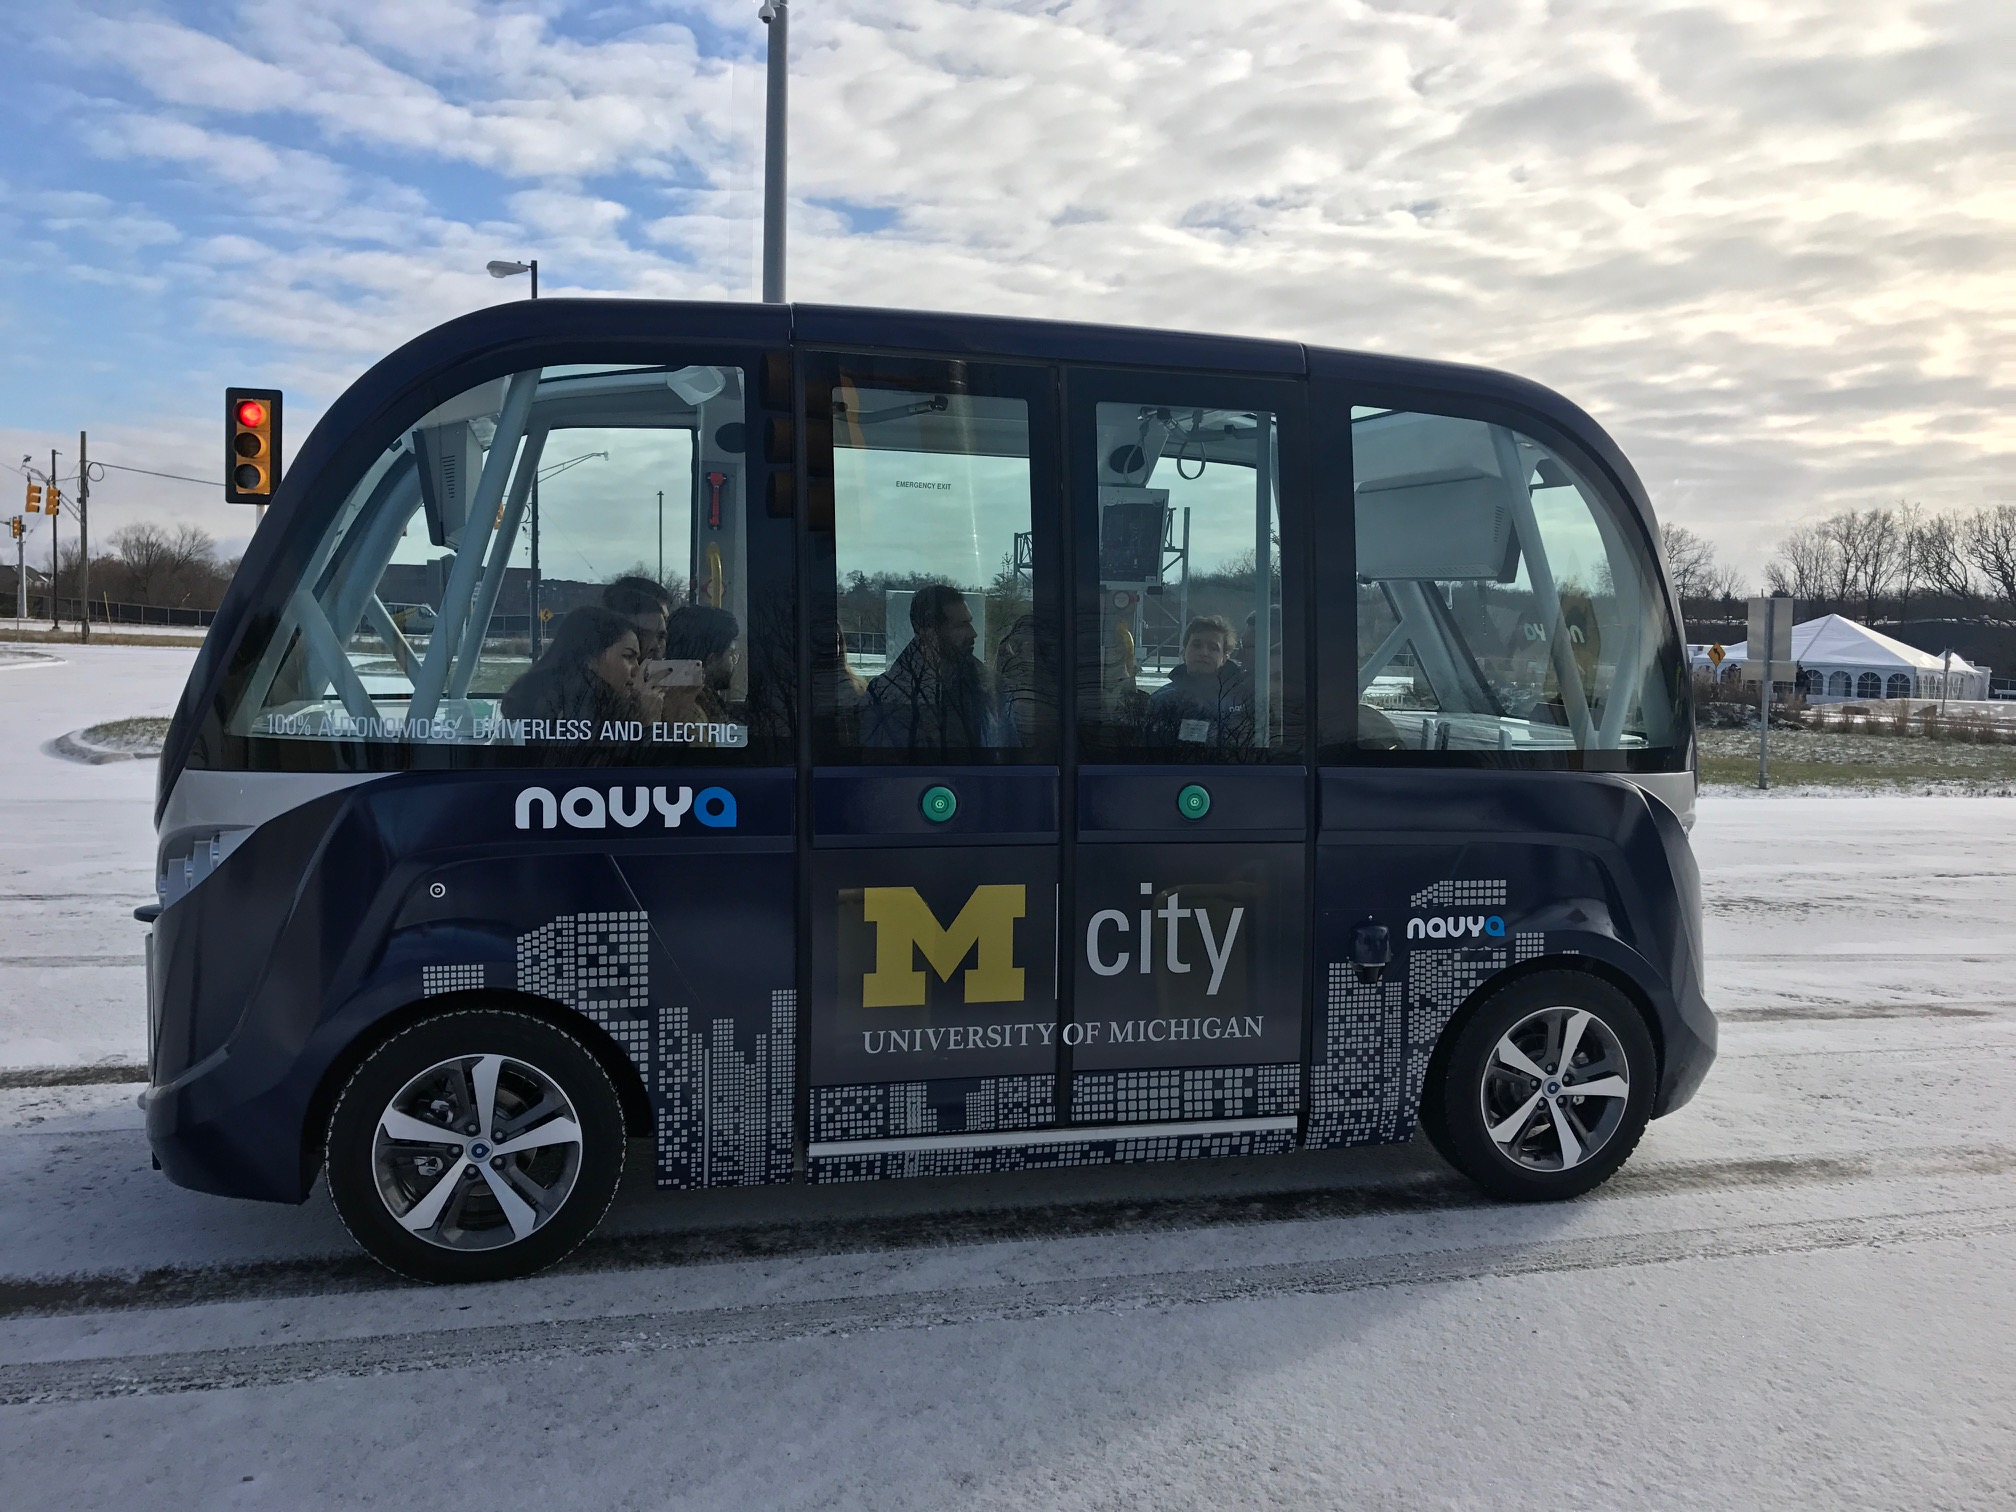 Nayva already operates autonomous self-driving shuttles in several cities worldwide.